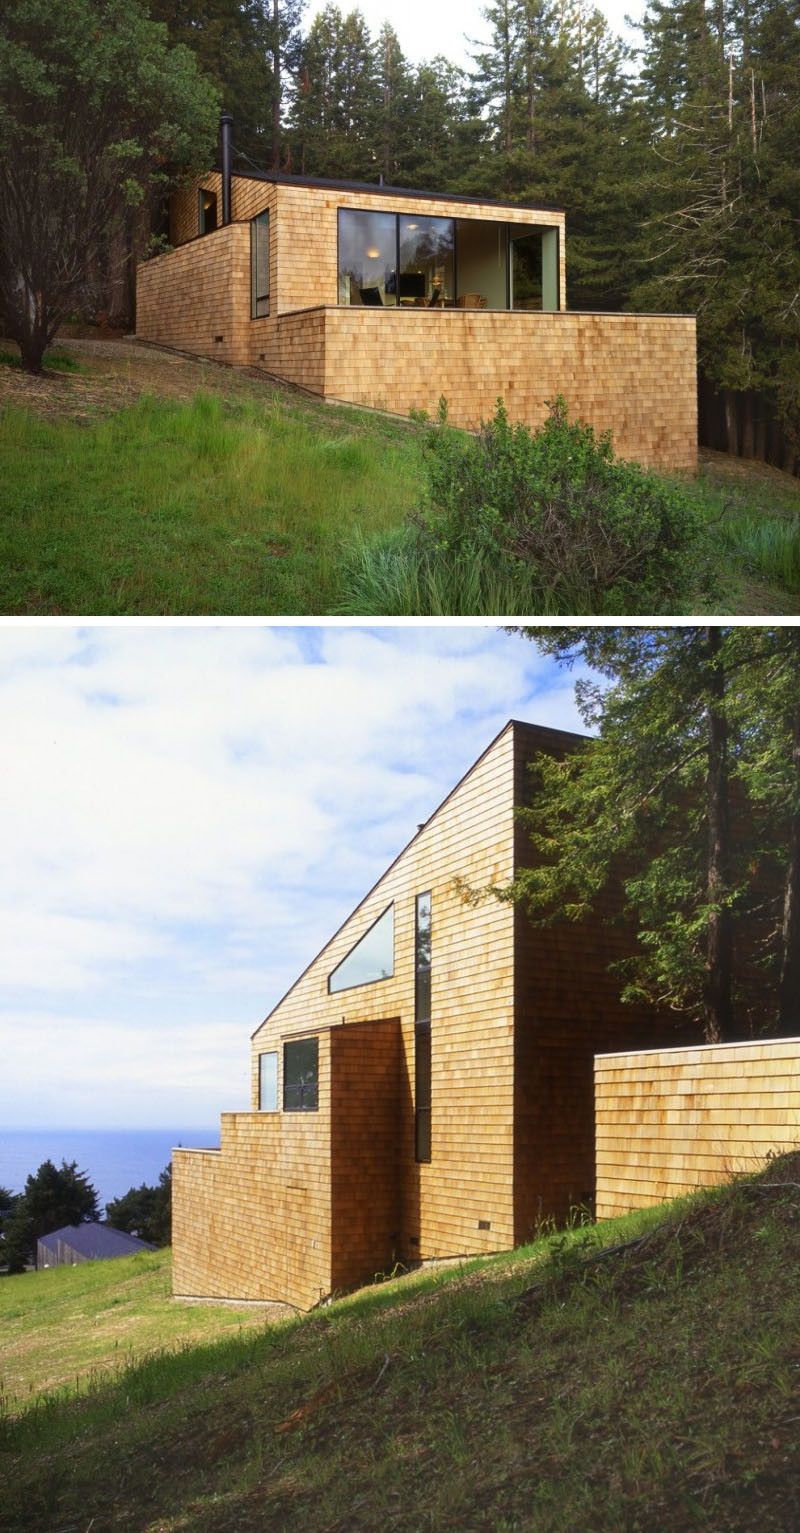 13 Examples Of Modern Houses With Wooden Shingles // The only parts of this house not covered in shingles are the windows.